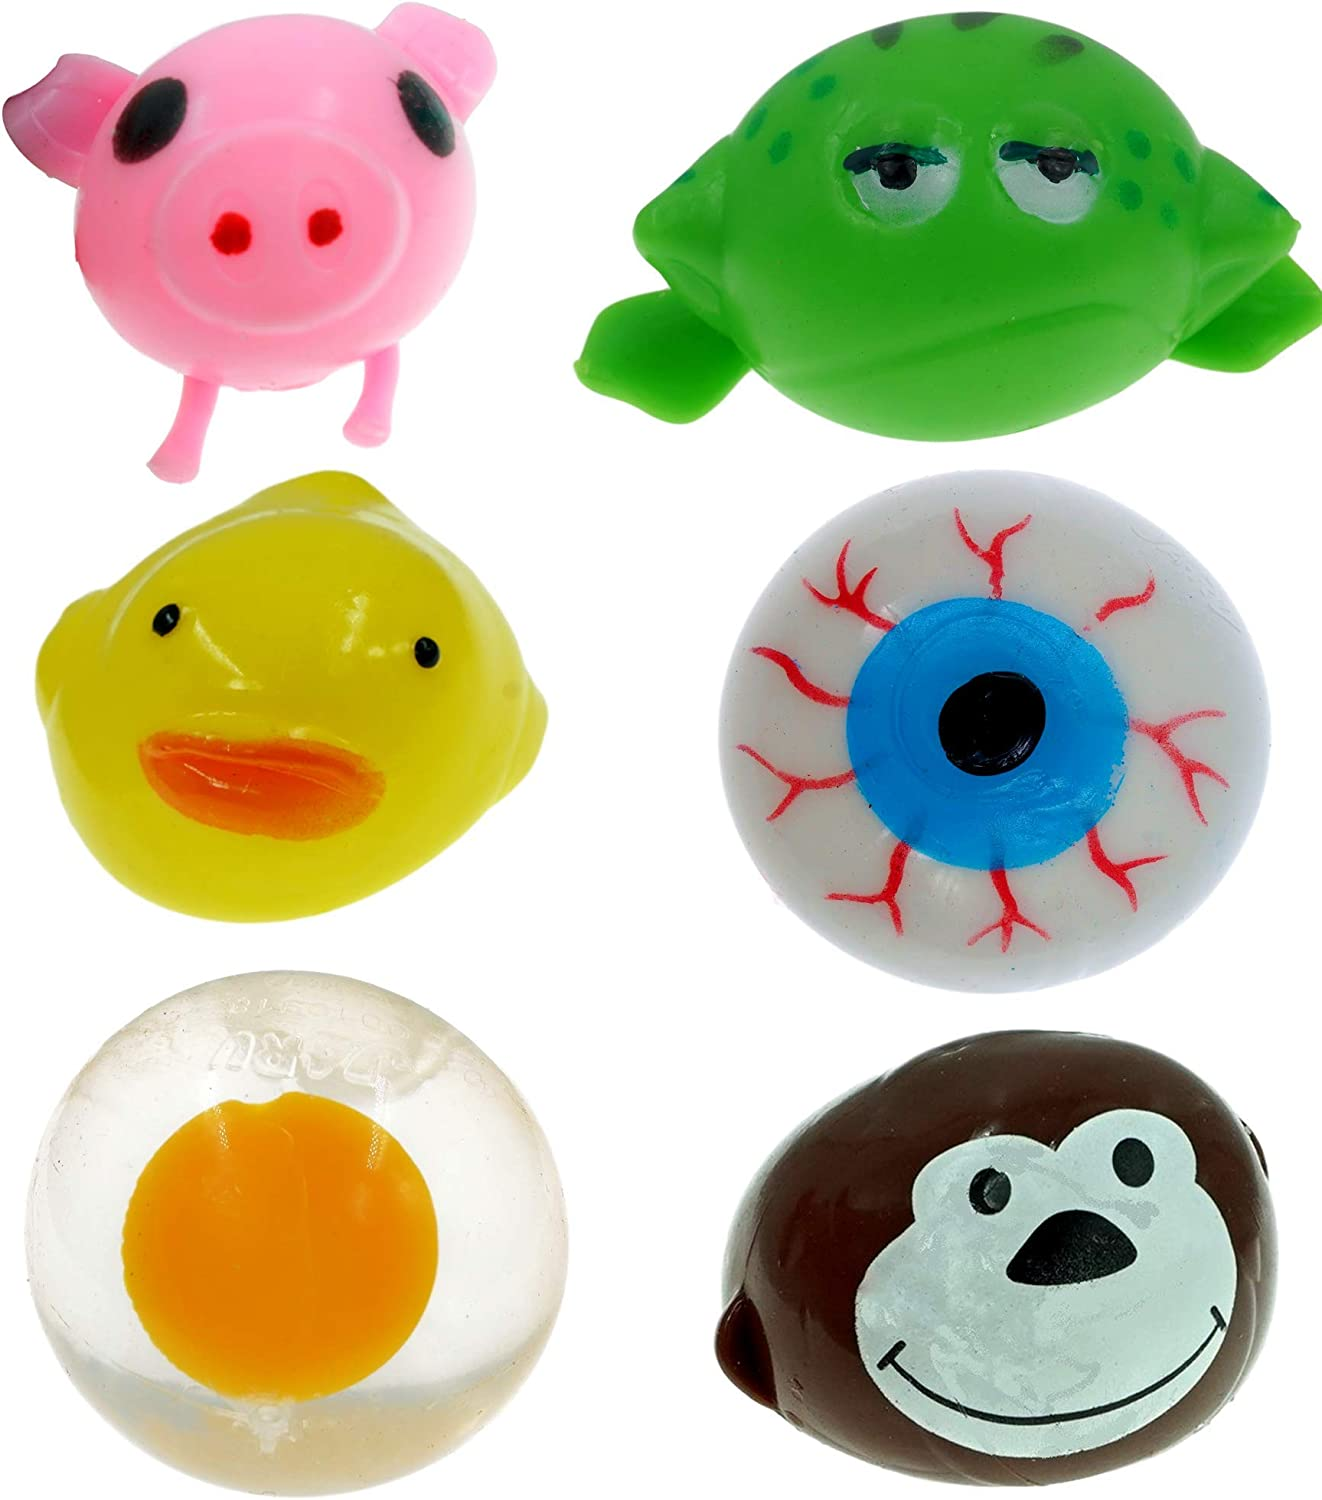 SPLAT BALL DUCK SQUISHY SPLATS TOY STRESS RELIEVER GOODY BAG  FAST FREE SHIPPING